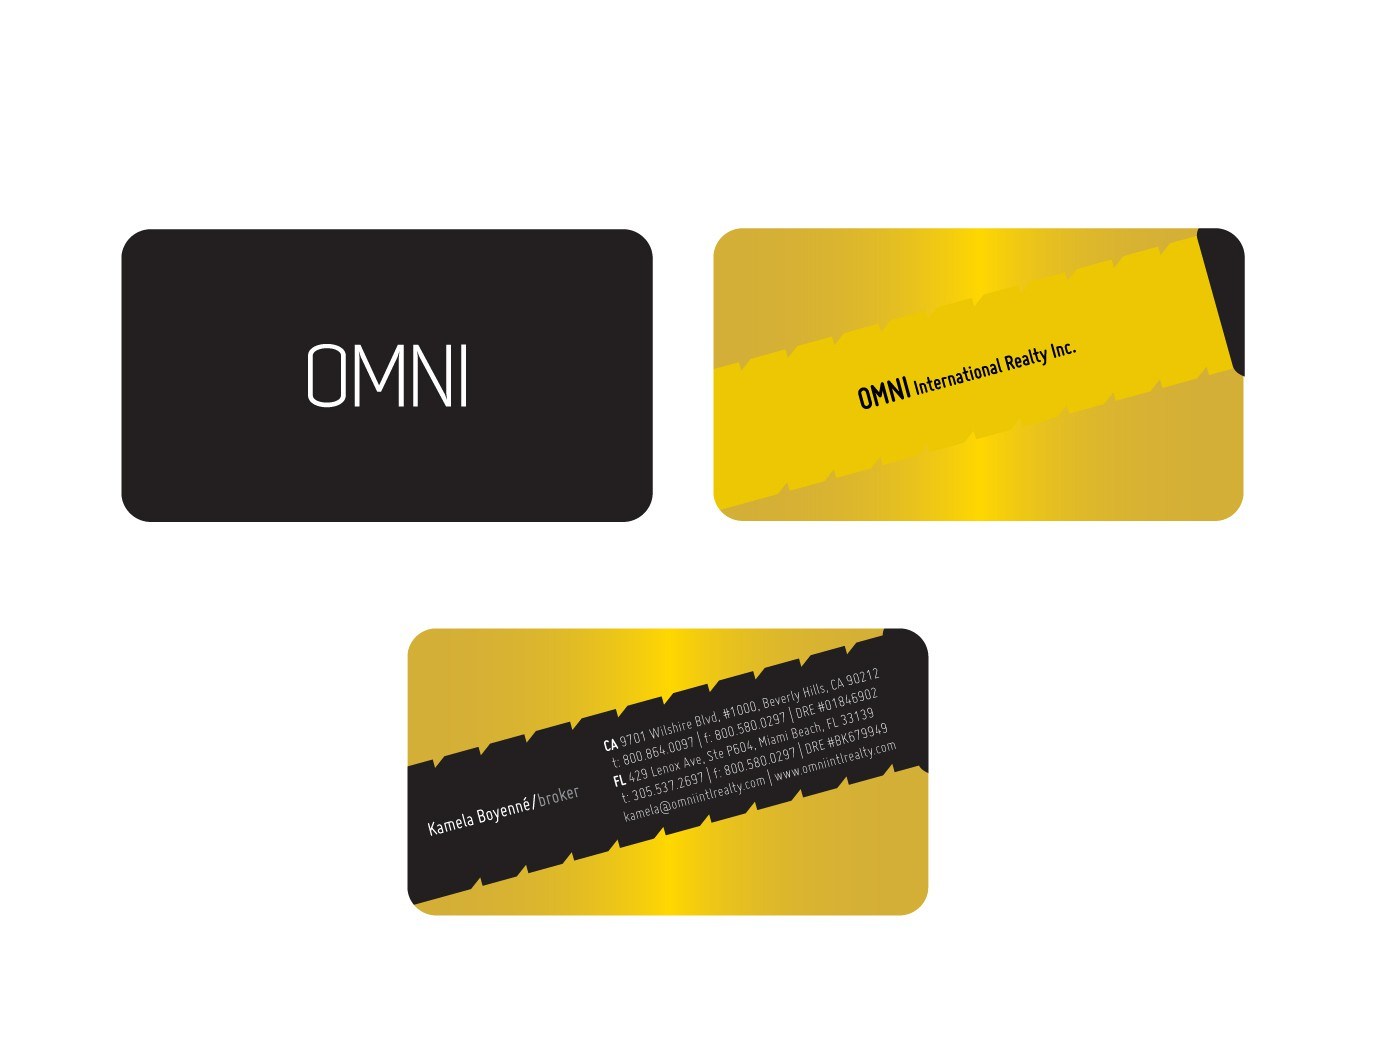 OMNI International Realty Inc. needs a new stationery